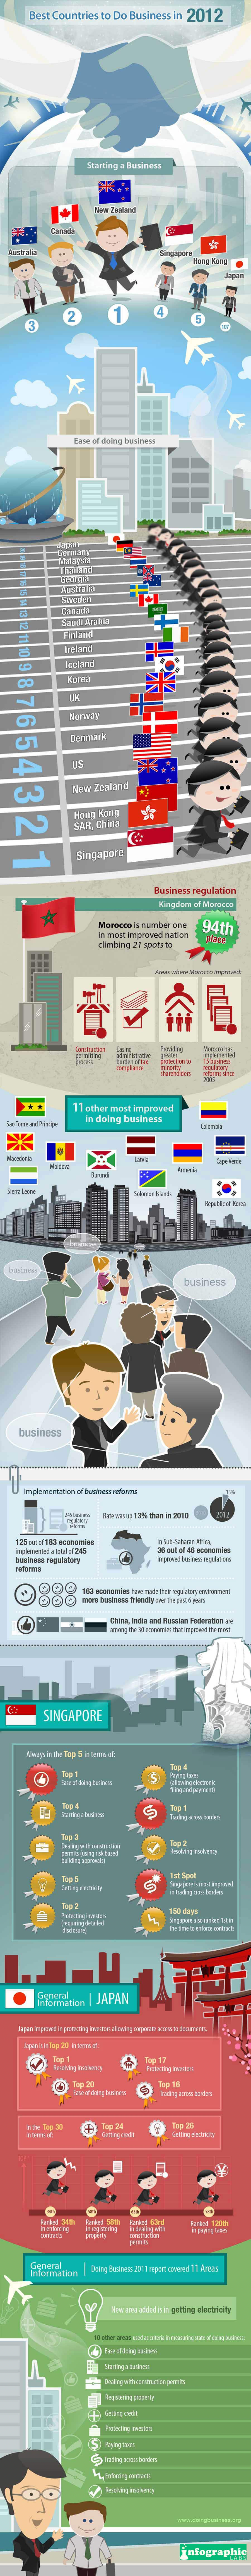 best-business-countries-infographic